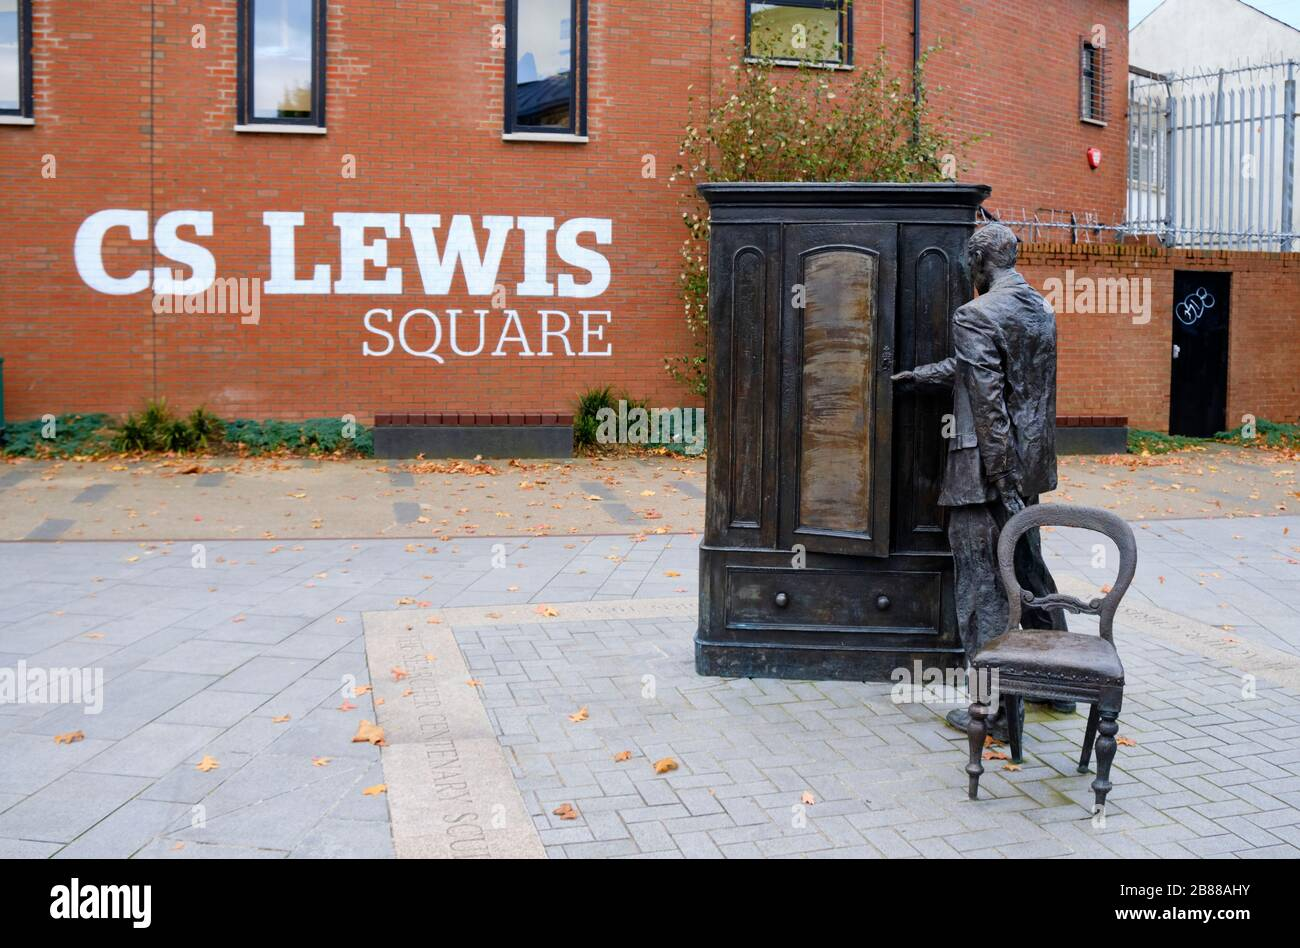 person-entering-wardrobe-sculpture-in-cs-lewis-square-in-east-belfast-2B88AHY.jpg